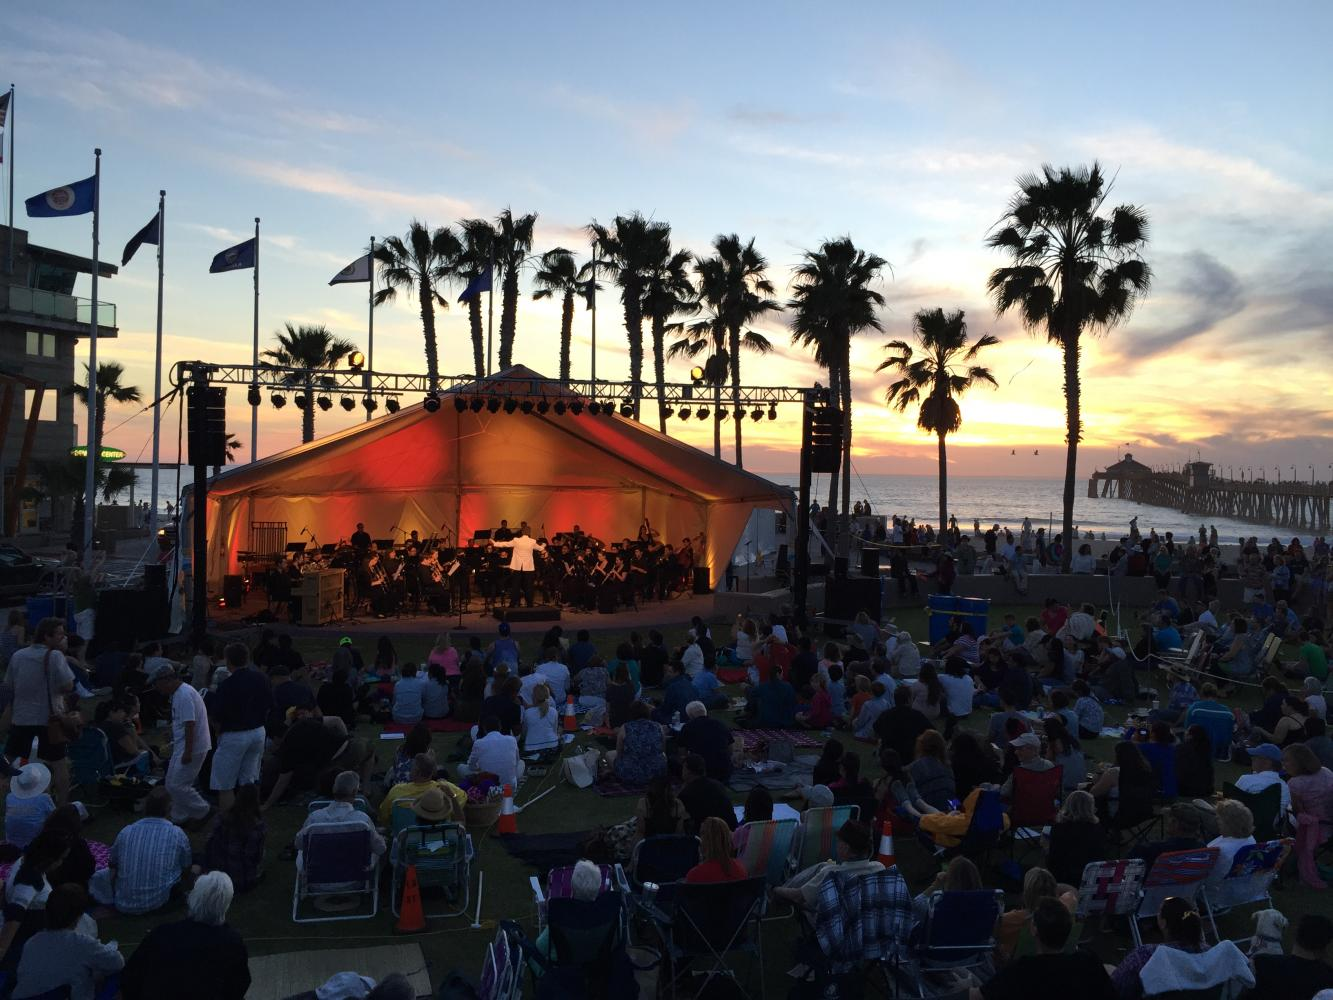 San Diego State's Symphony Orchestra and Wind Symphony performed during sunset in Imperial Beach at the annual Symphony by the Sea on Saturday, Oct. 7.